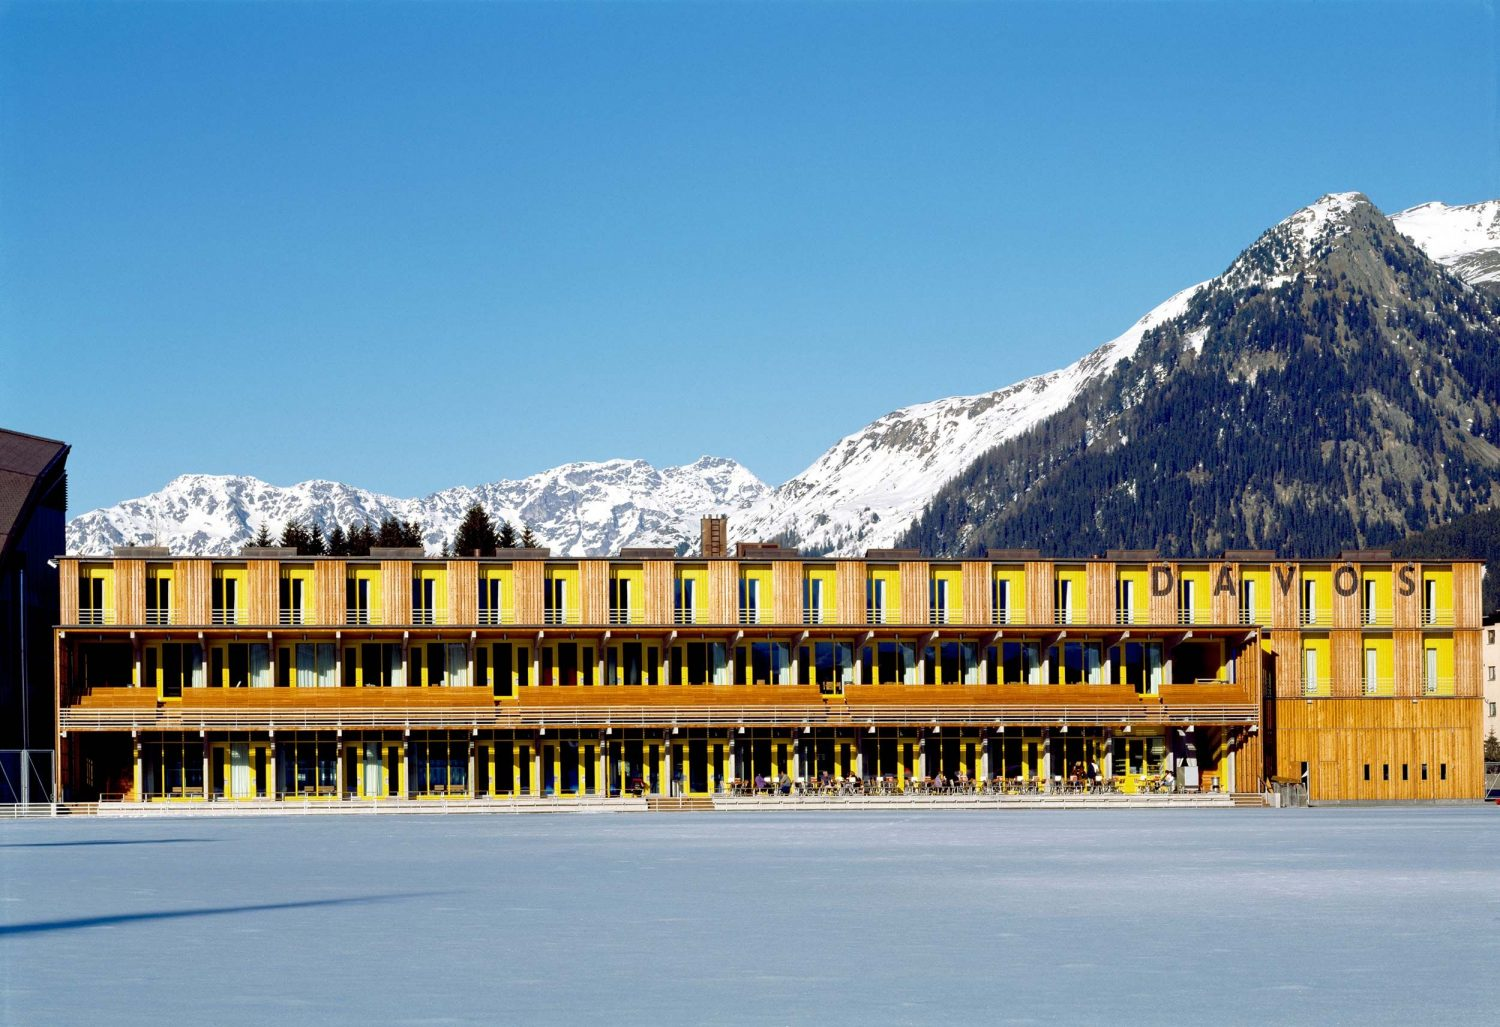 Davos Sports Center<br />Converted into: Davos Tourism and Sports Center post image